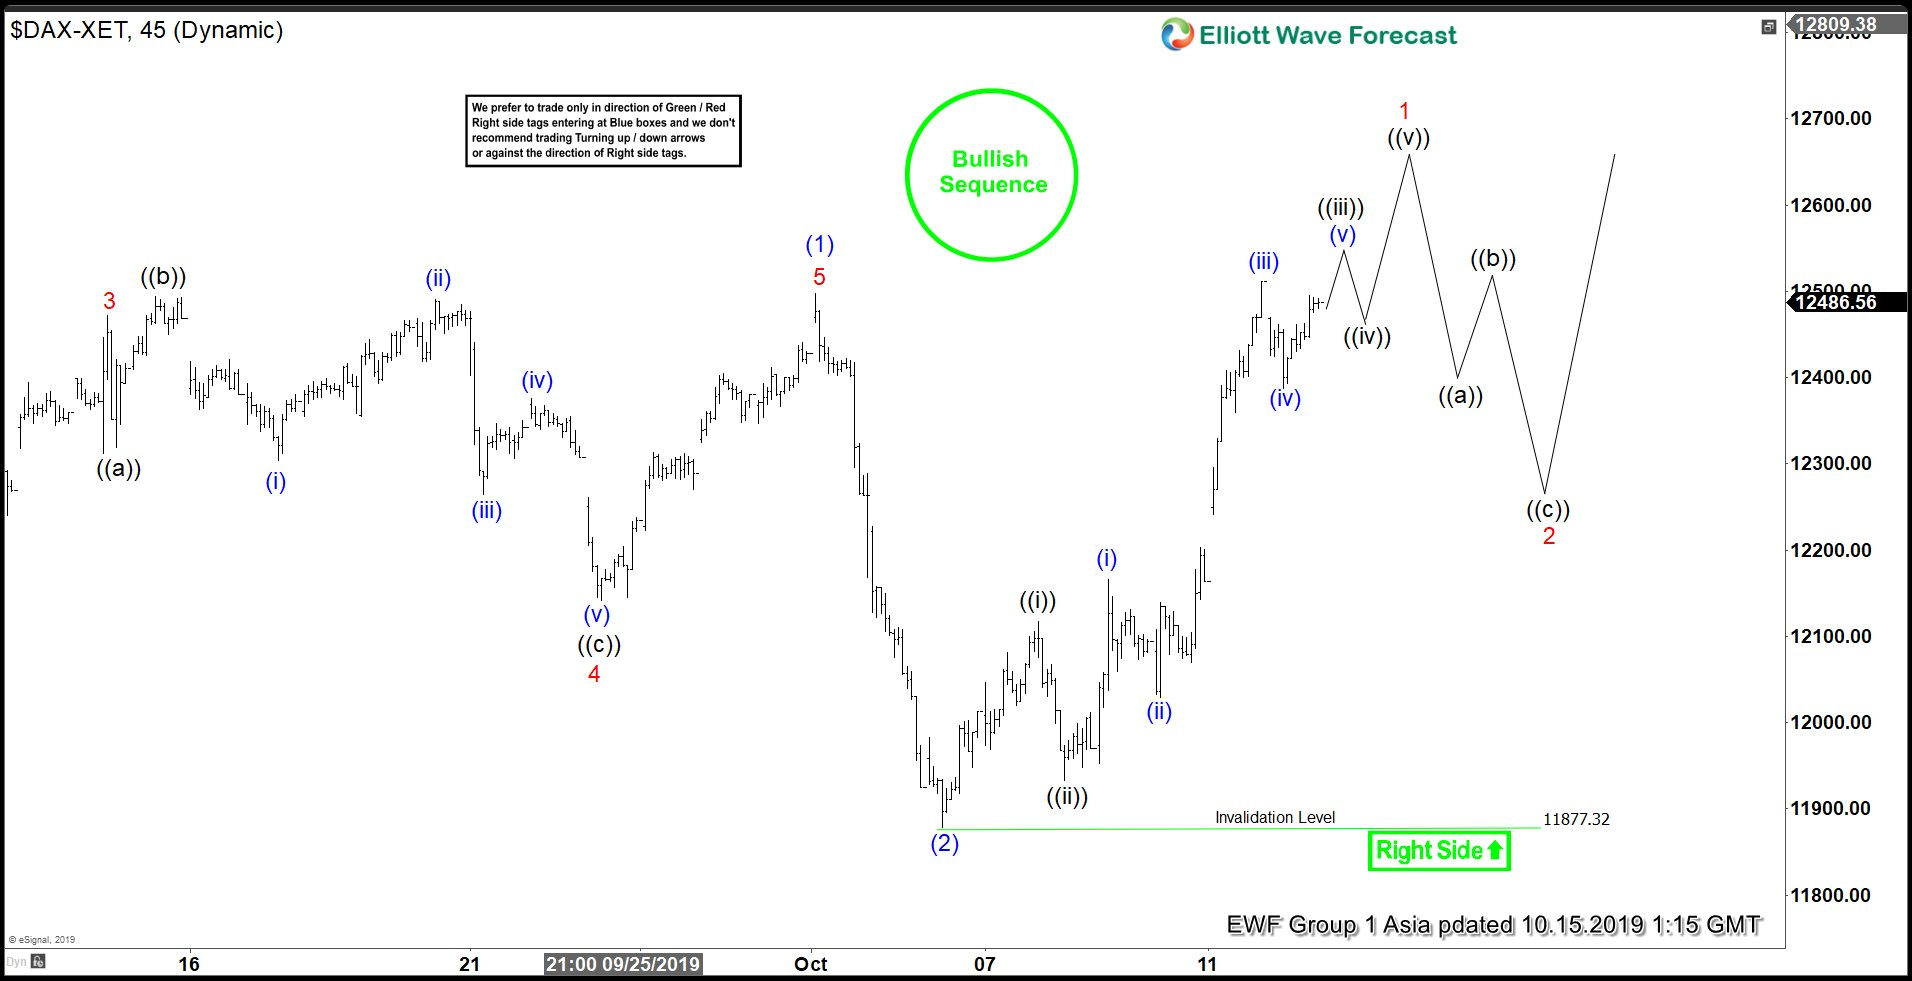 Elliott Wave View: Bullish Sequence in DAX